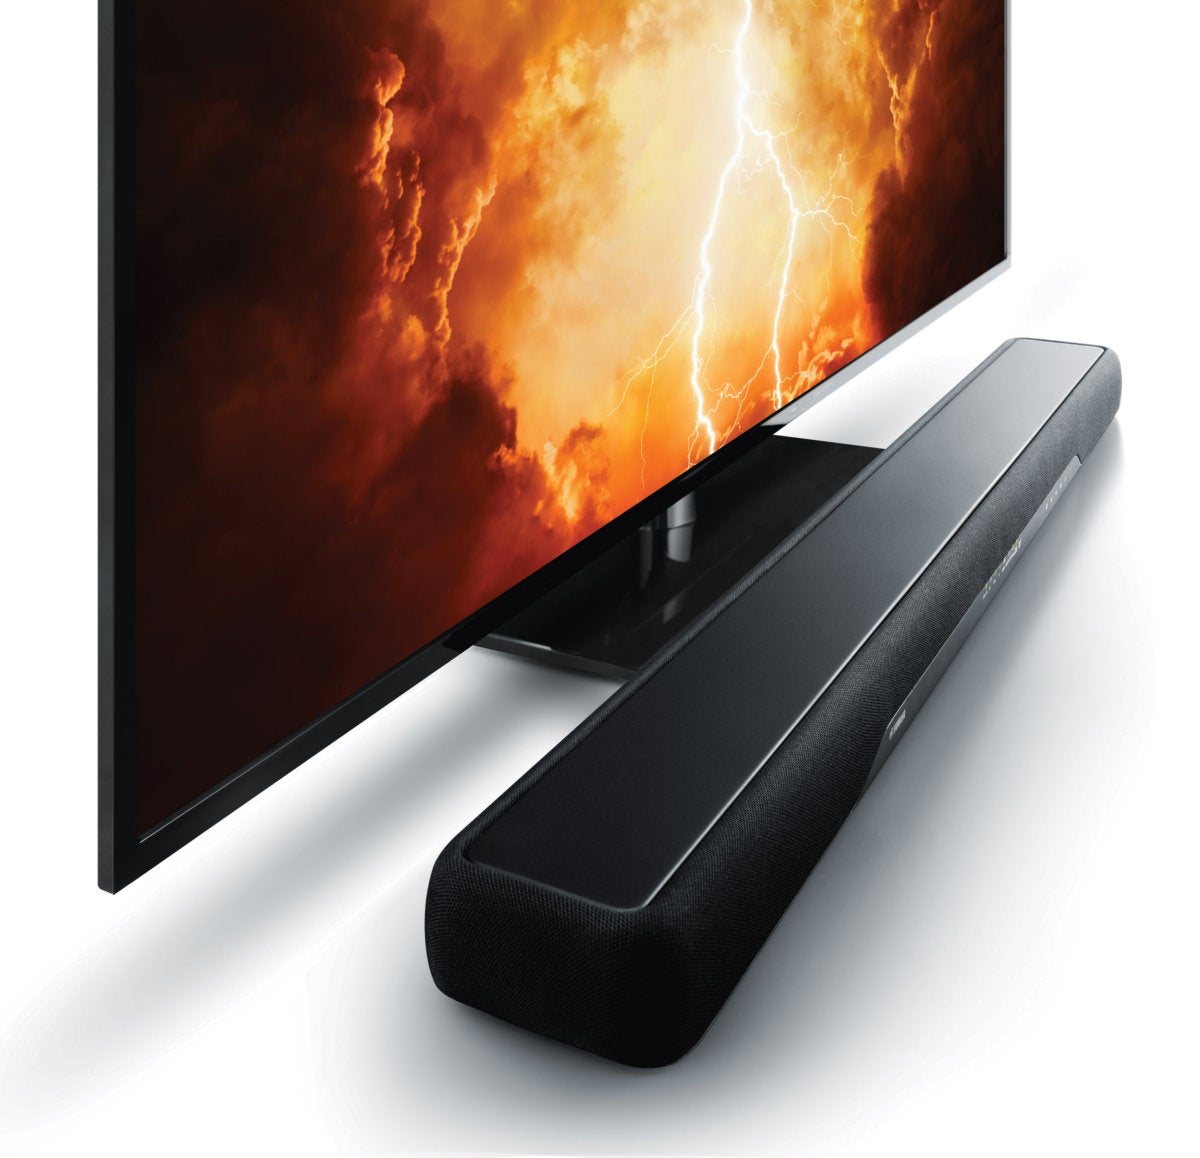 yamaha yas 207 soundbar review a taste of immersive audio. Black Bedroom Furniture Sets. Home Design Ideas